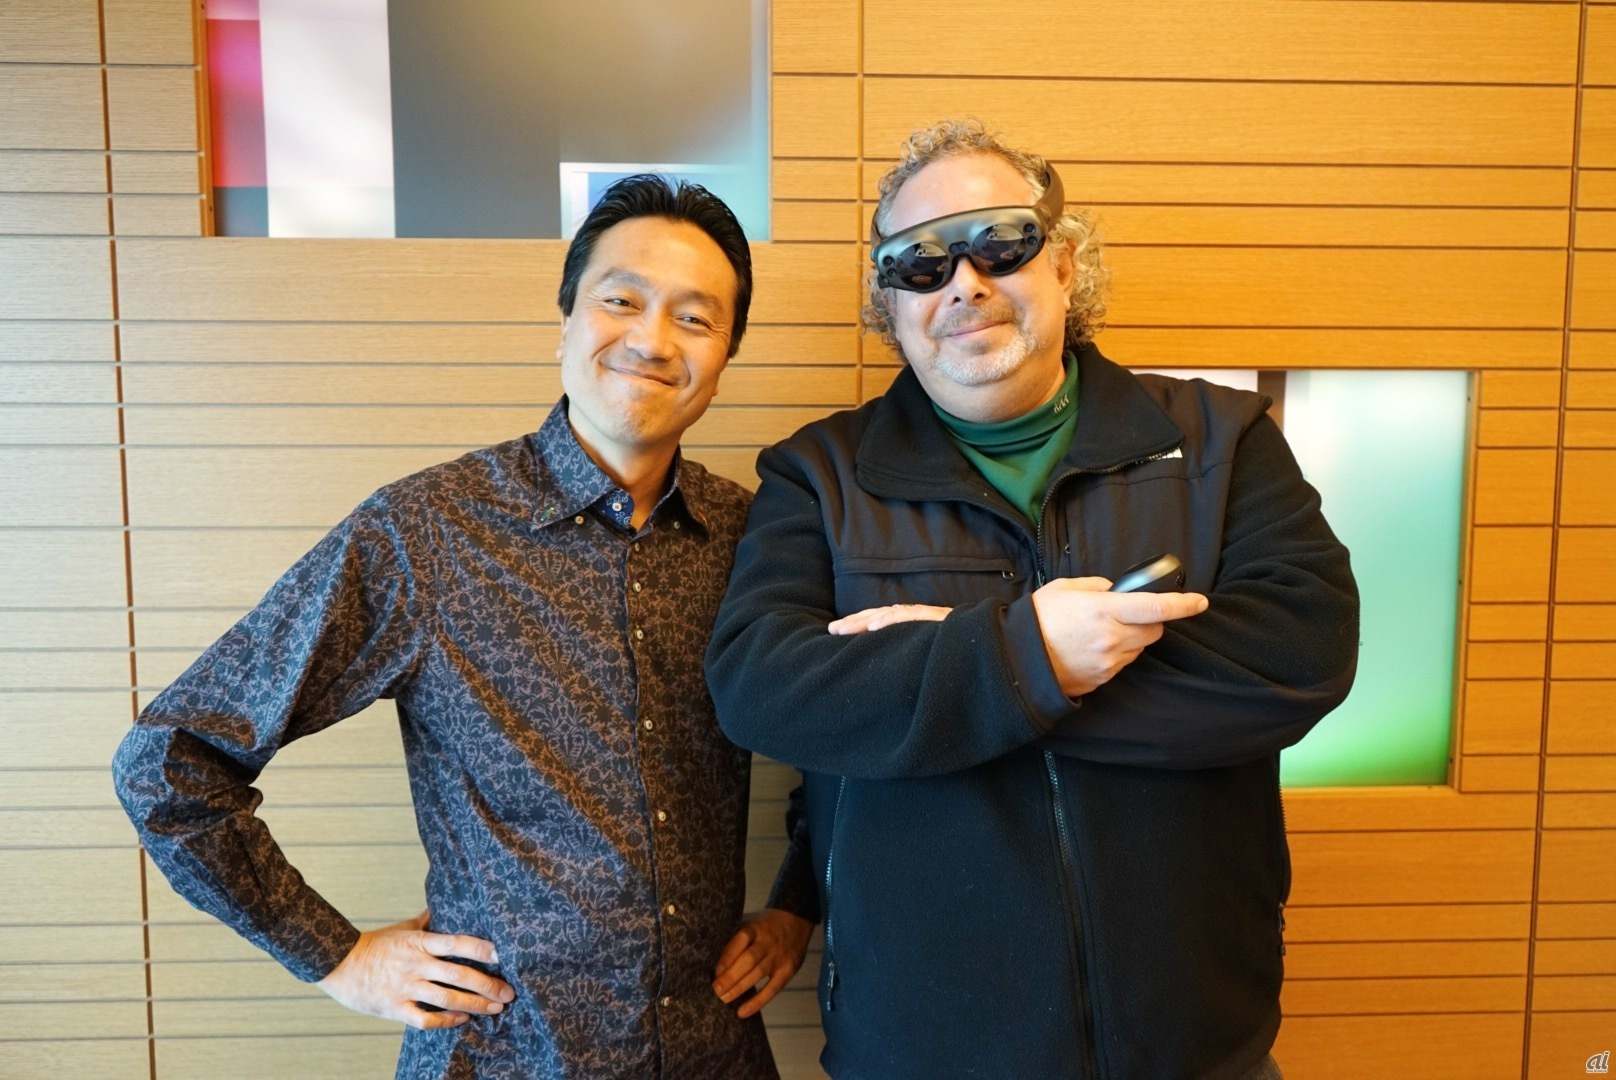 右から、Magic Leap President & CEOのRony Abovitz氏と、同社Design SVPのNatsume Gary氏